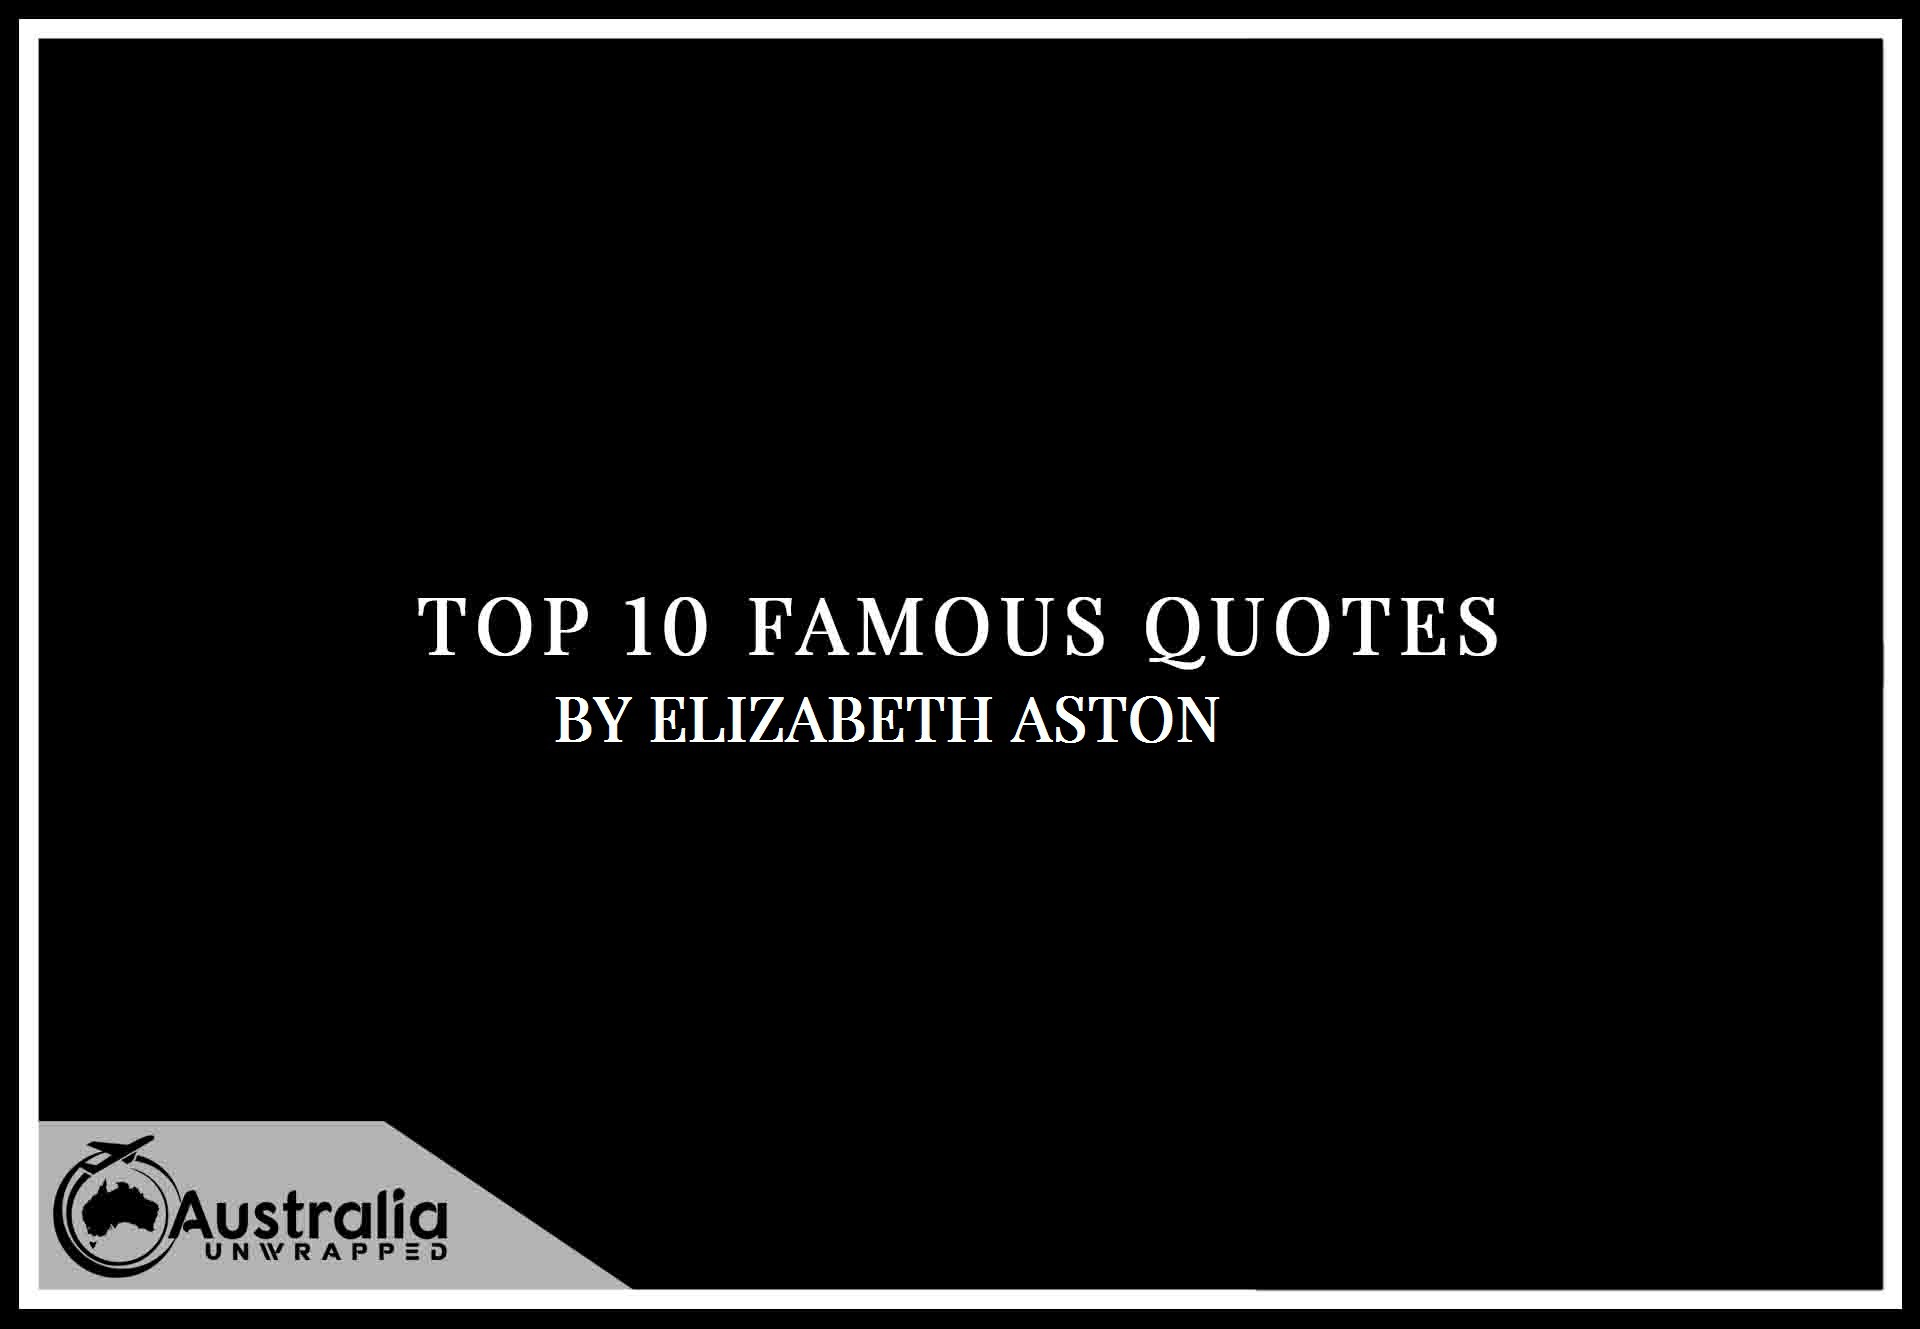 Elizabeth Aston's Top 10 Popular and Famous Quotes